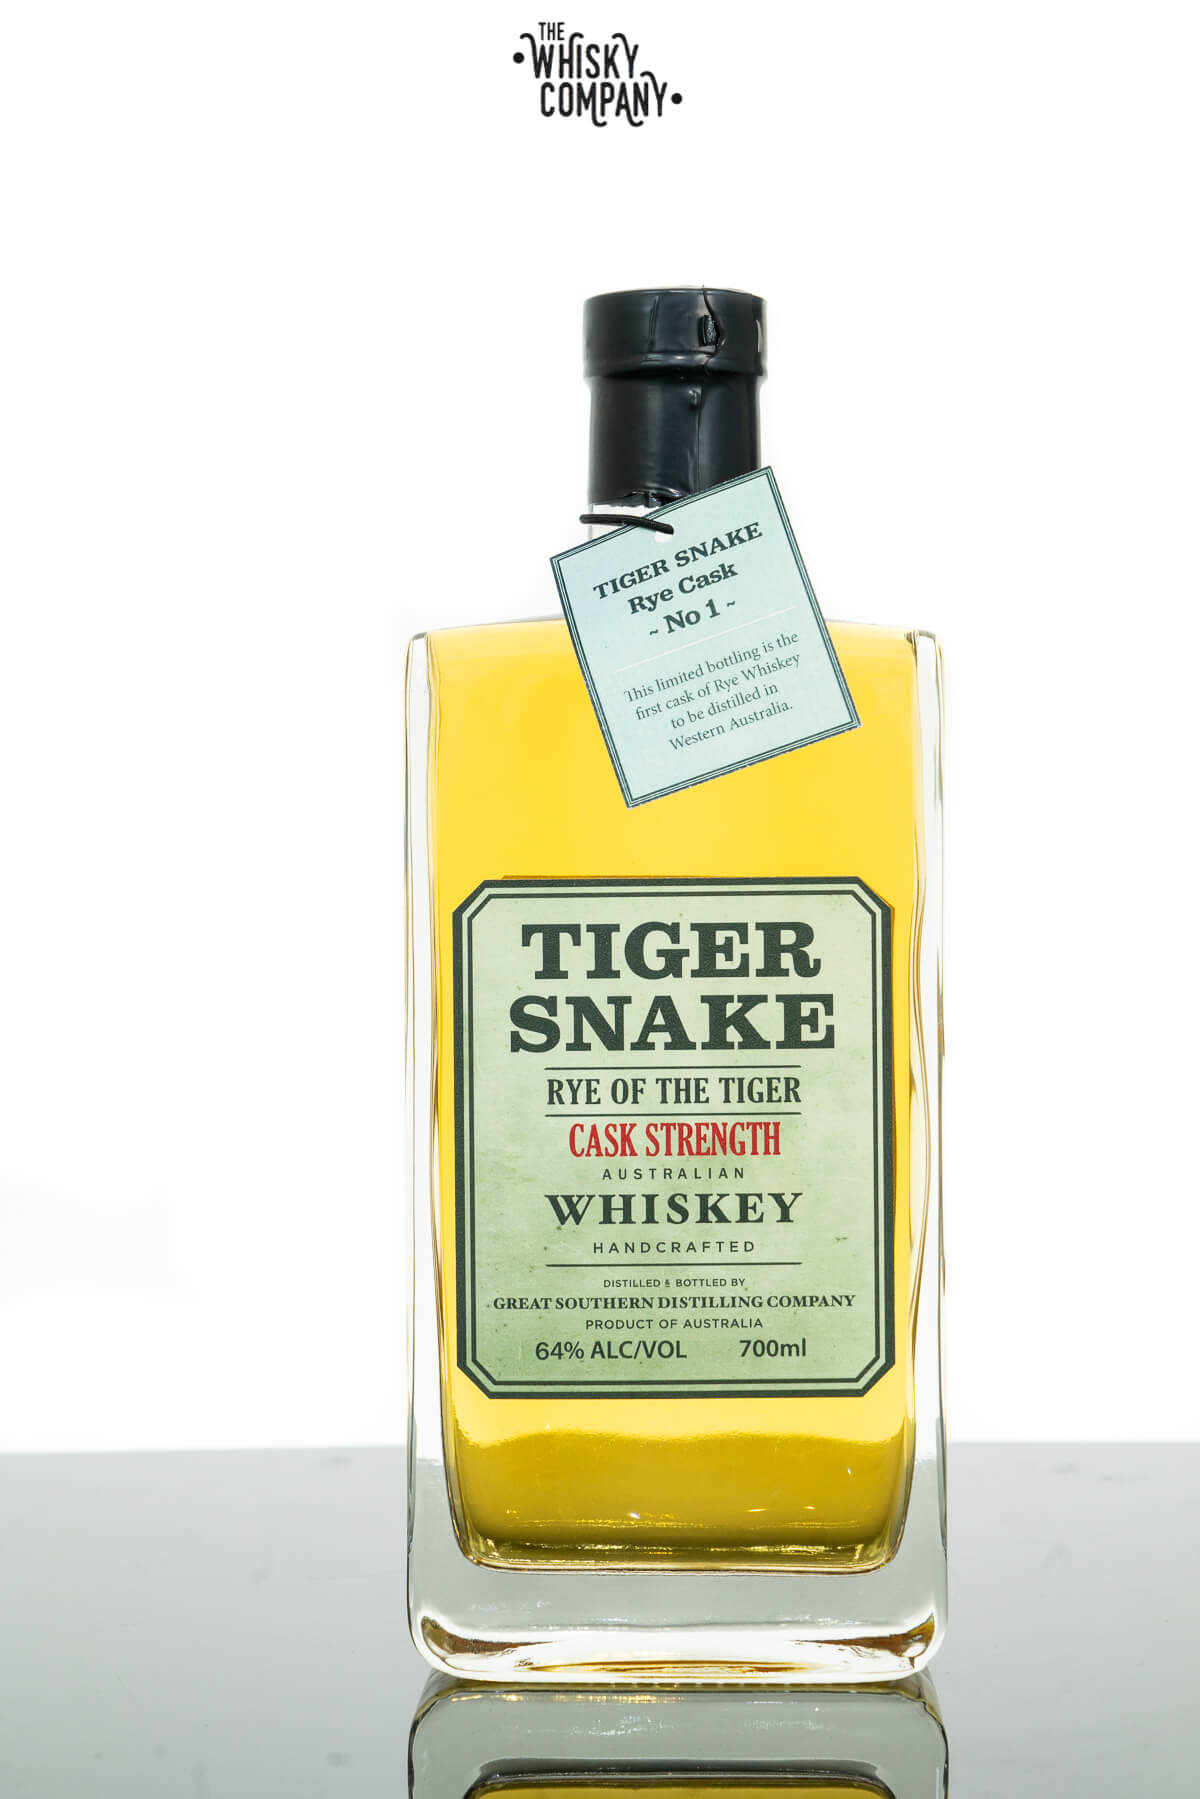 Tiger Snake Rye Of The Tiger Cask Strength Small Batch Australian Whiskey (700ml)